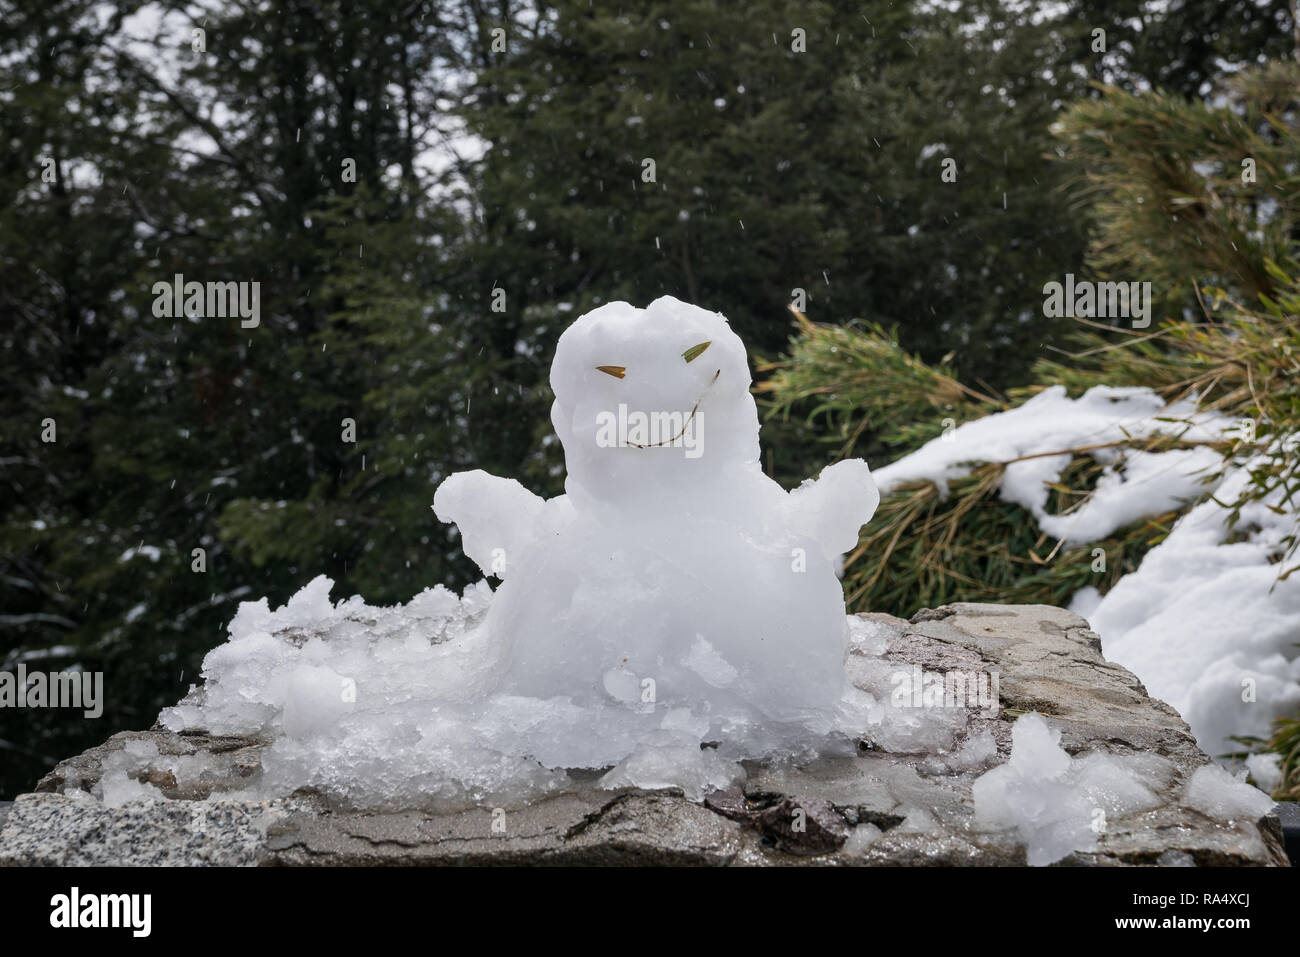 Snowman made of fresh white snow on a rock in mountain woodland conceptual of Christmas holiday season Stock Photo